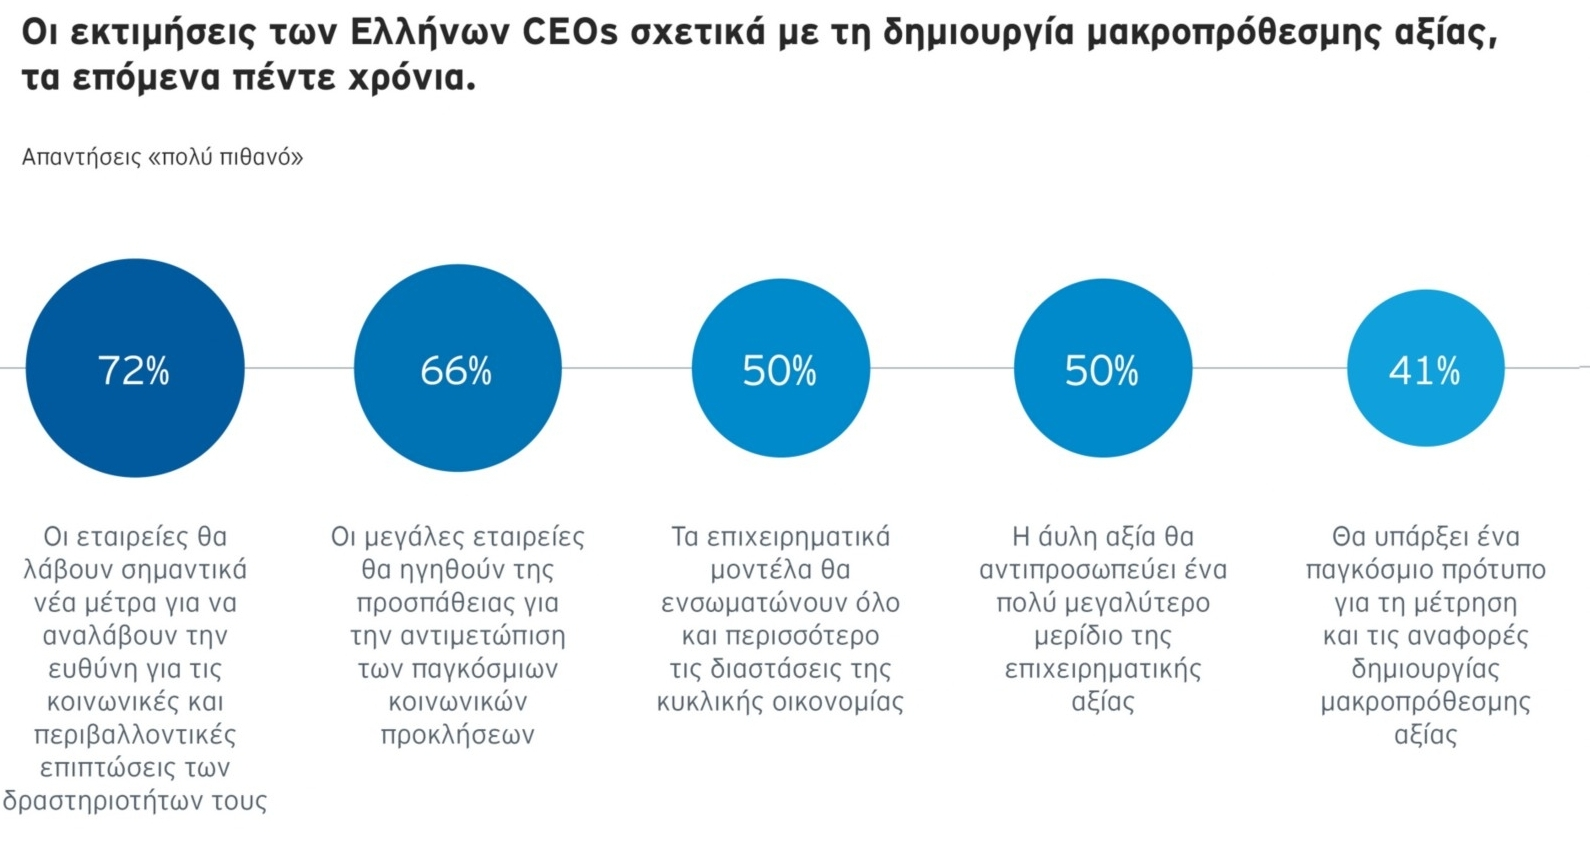 EY CEO Imperative Study Greece 2021